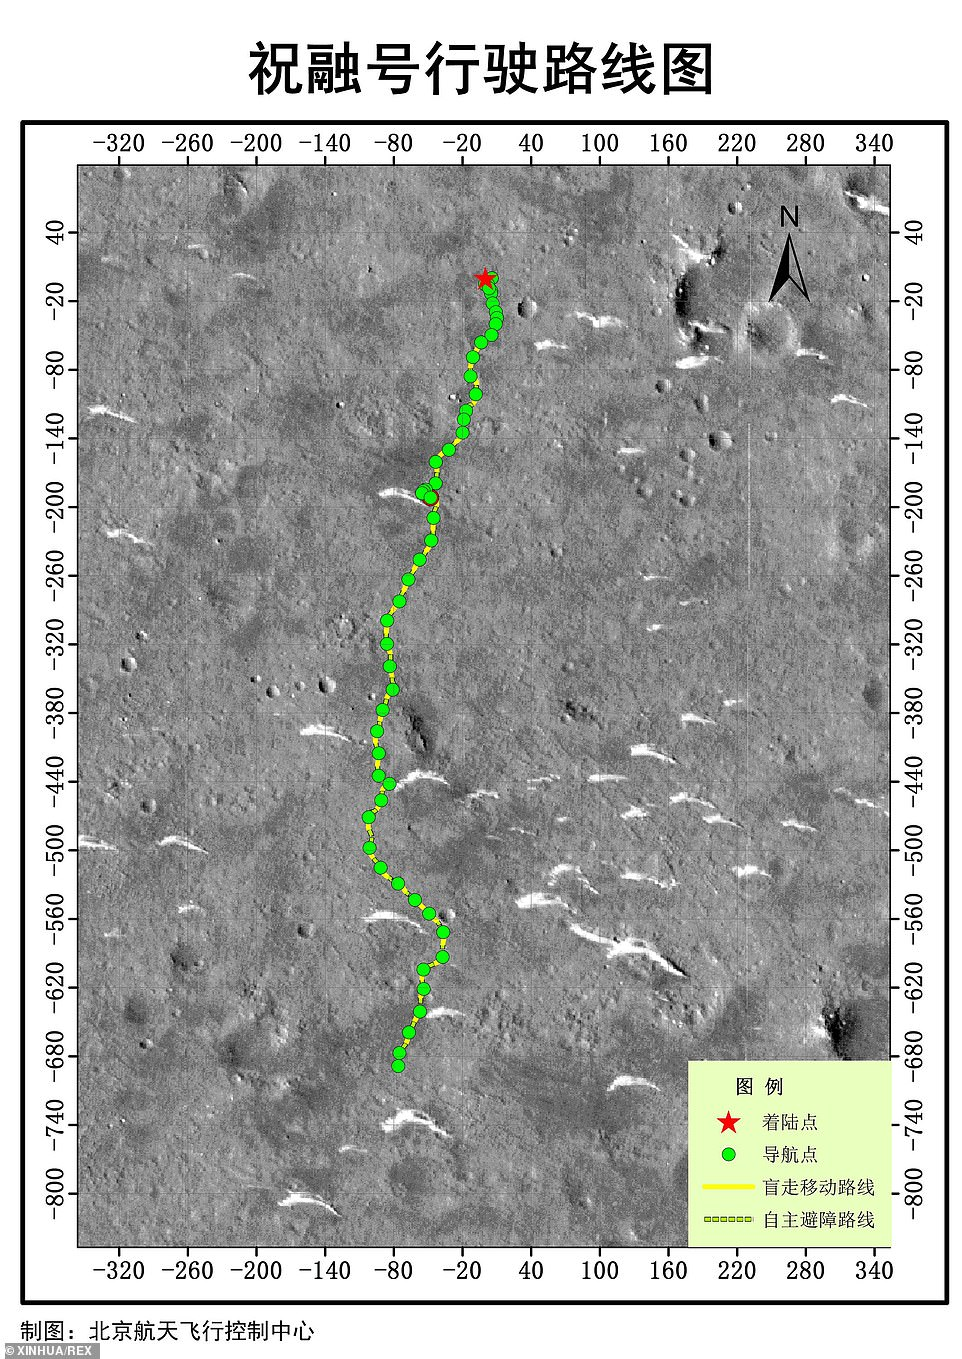 Image shows the road map of China's Mars rover Zhurong. The rover has worked on Mars' surface for 100 days, and has driven3,491 feet (1,064 meters) south from its landing point (marked by the red star)